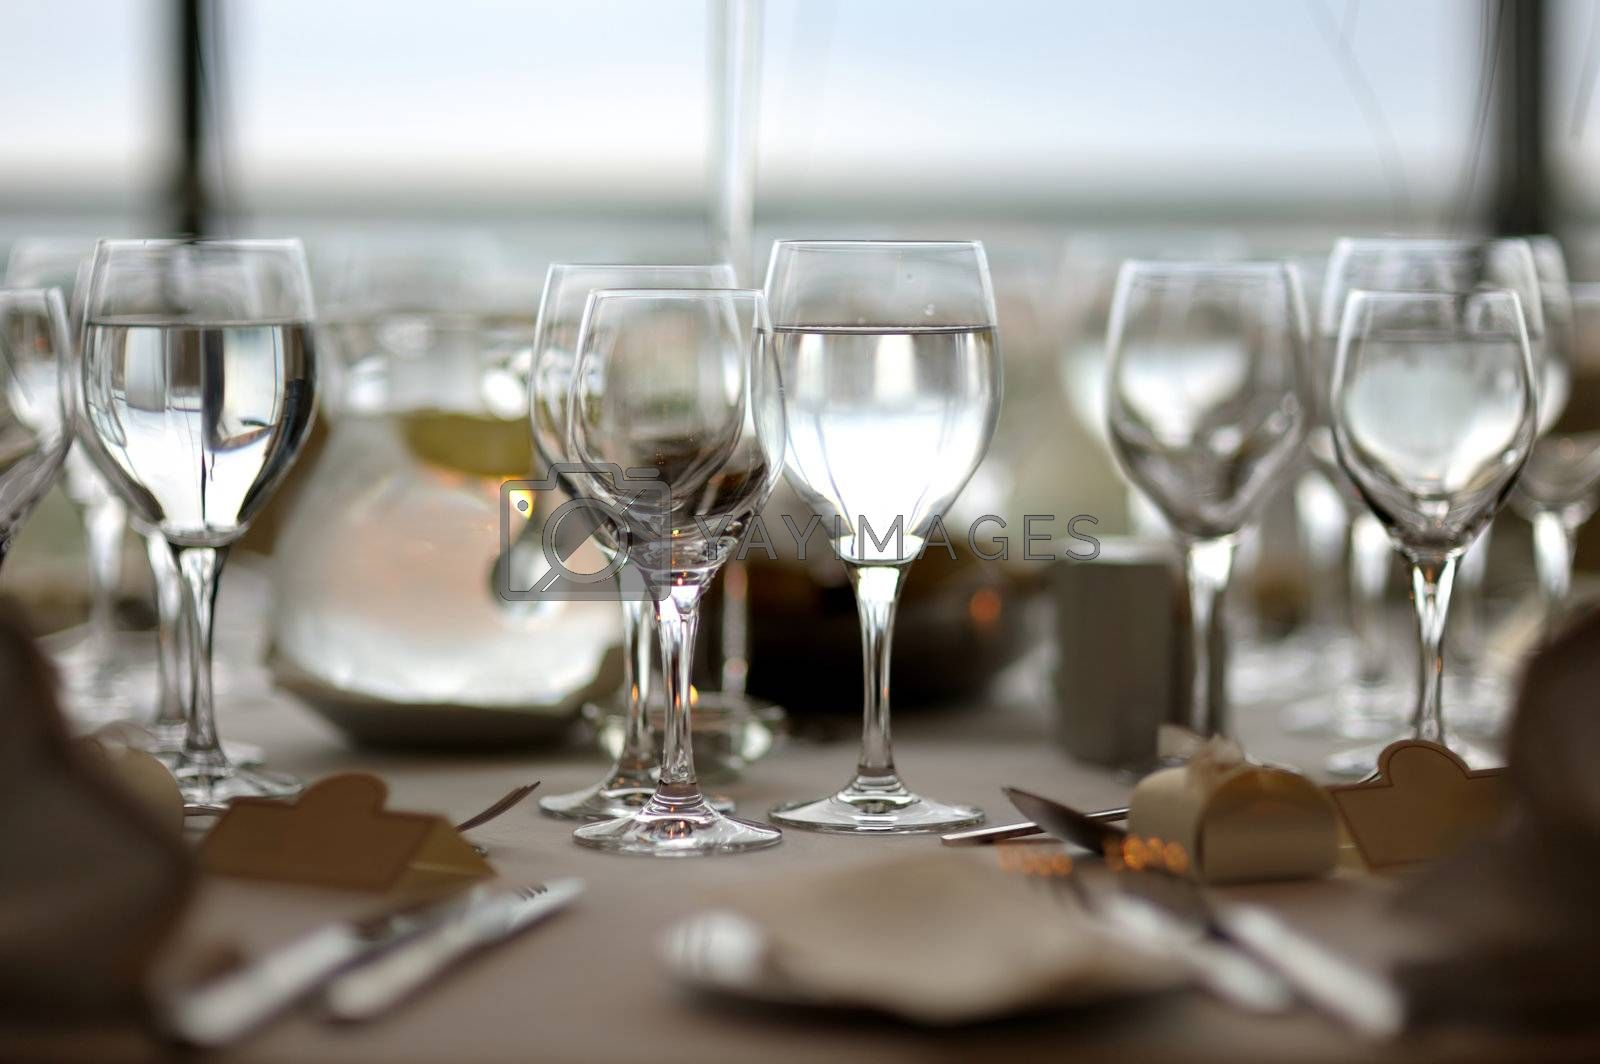 Festive table setting with lots of wine glasses